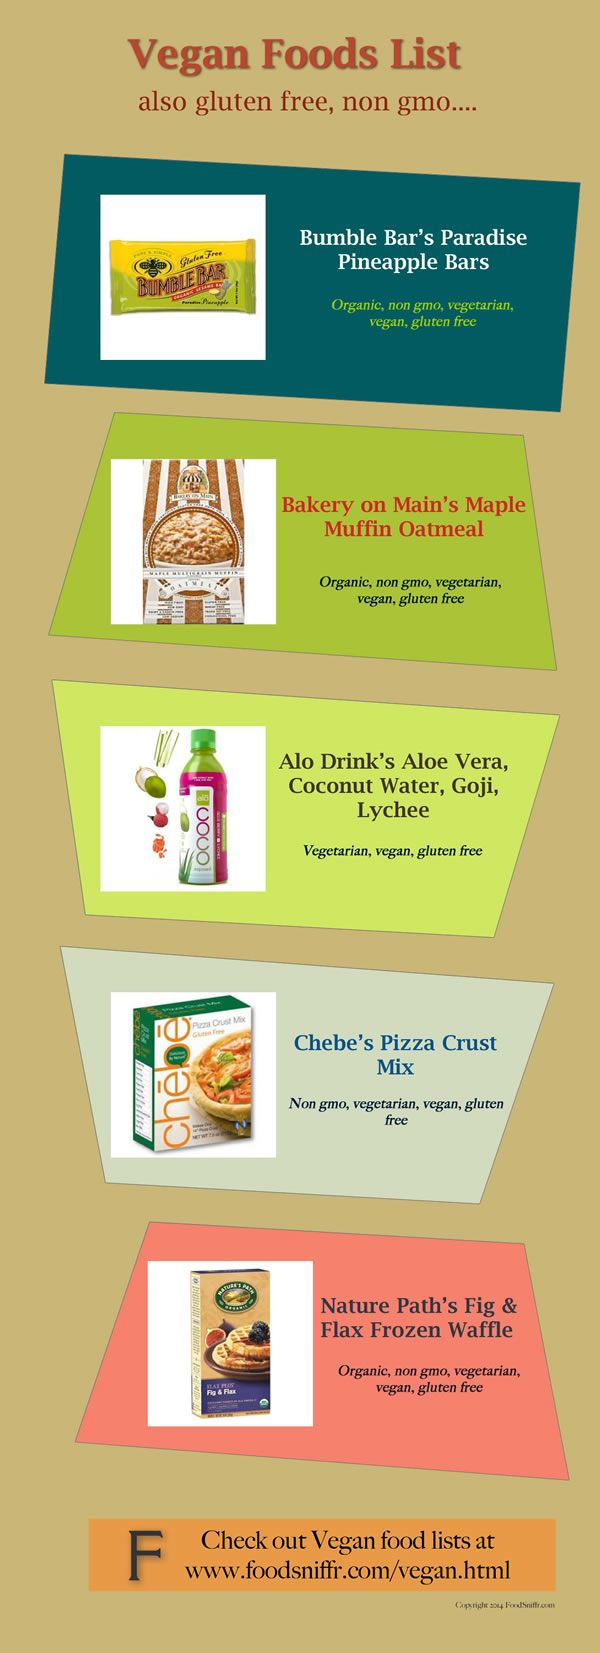 Vegan Foods List -  							 								 							 						  Vegan Foods List also check out FoodSniffr Vegetarian Food Lists at www.foodsniffr.com/vegetarian.html